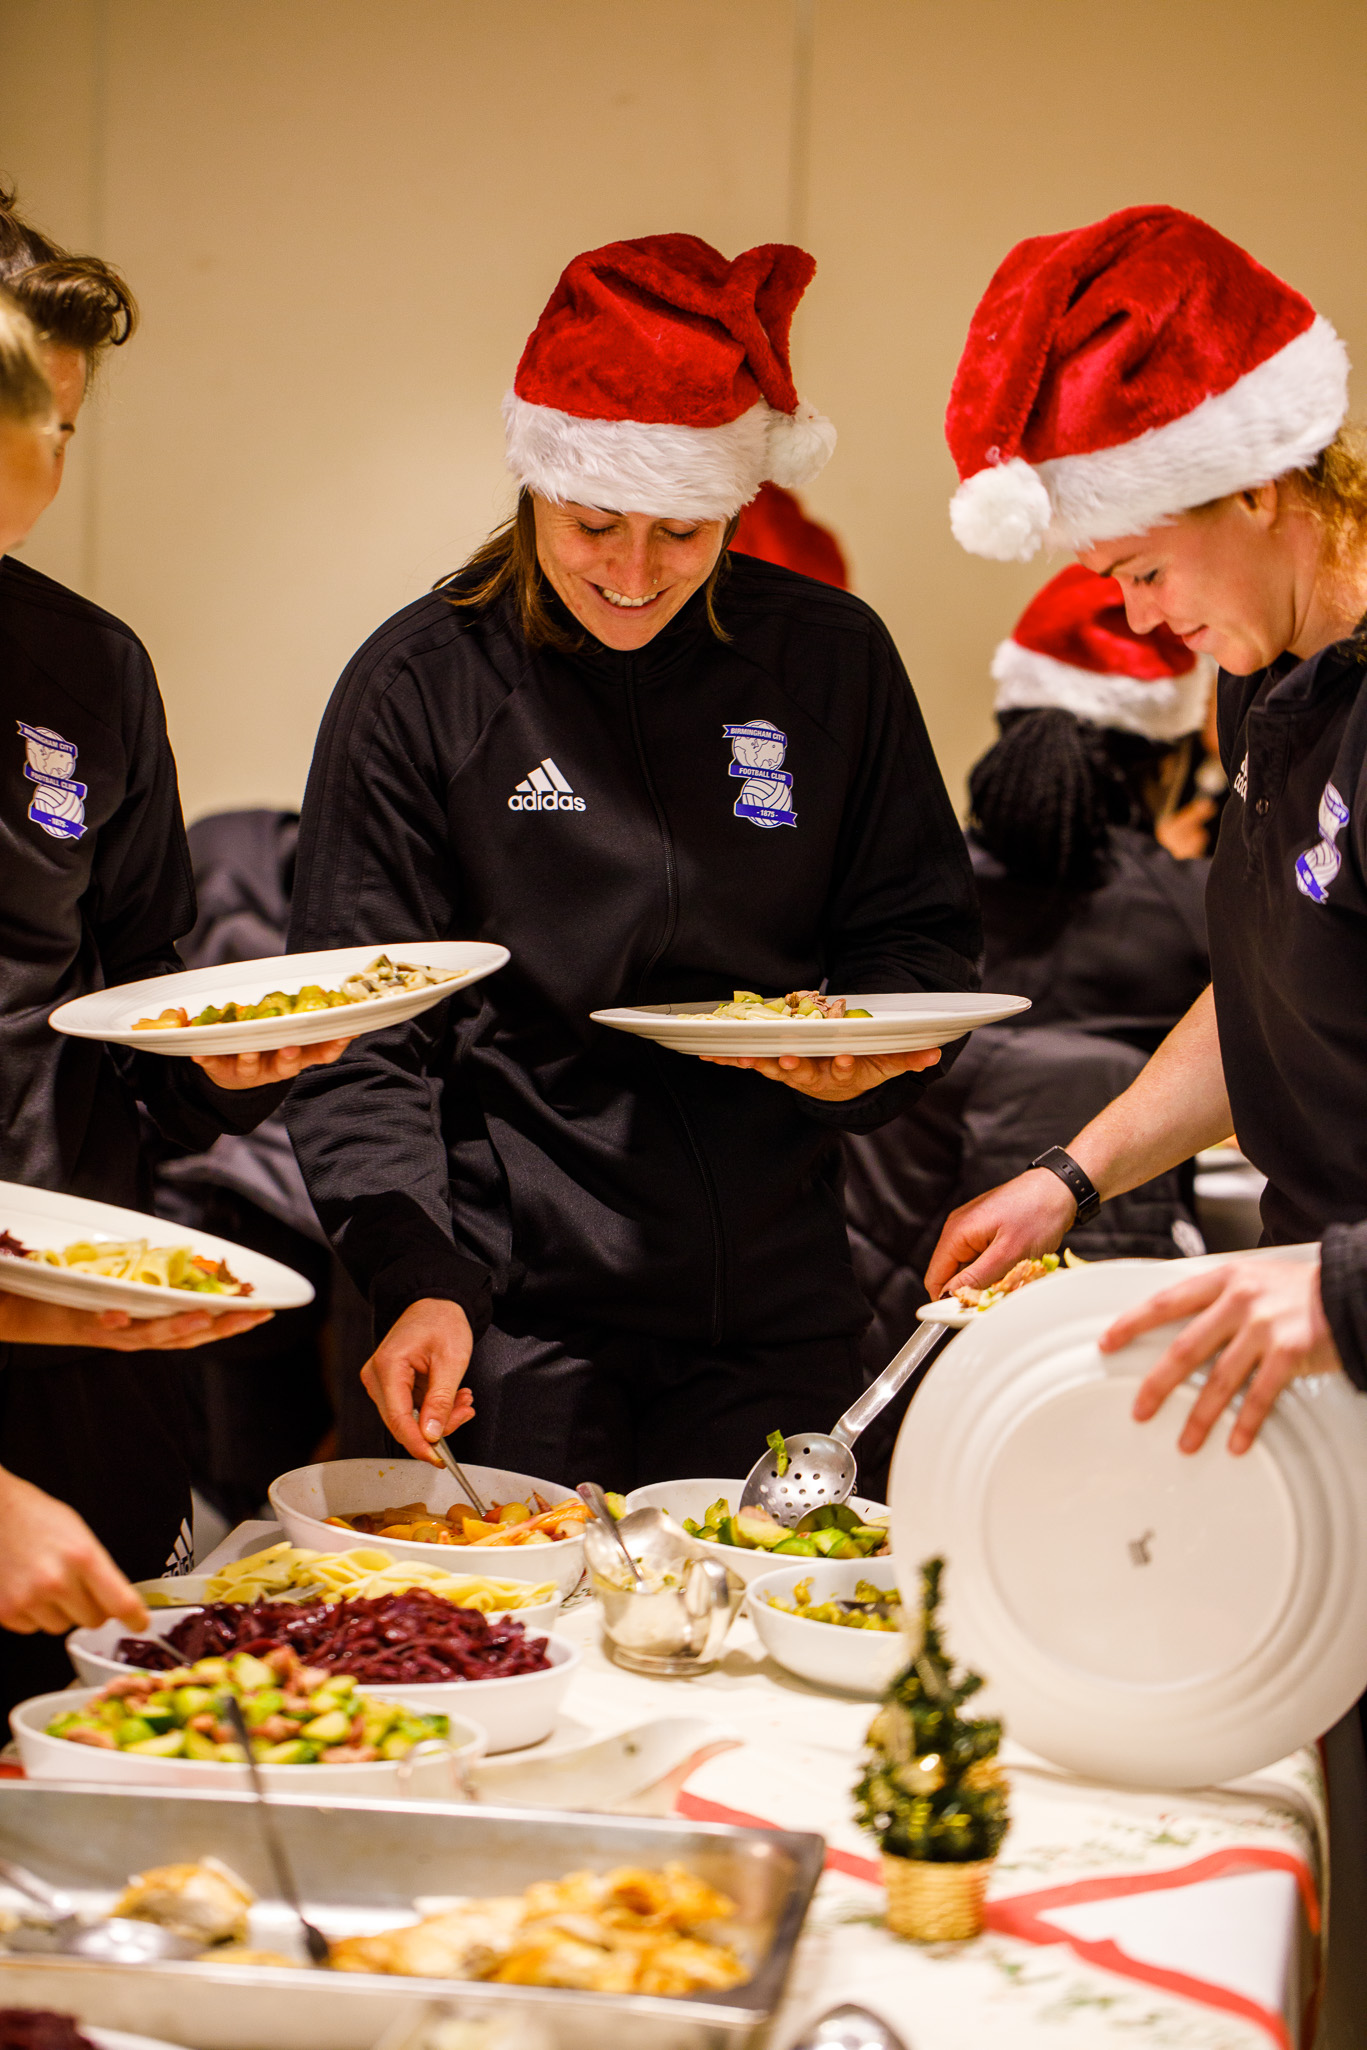 Birmingham City Ladies FC players digging into their Christmas feast they prepared